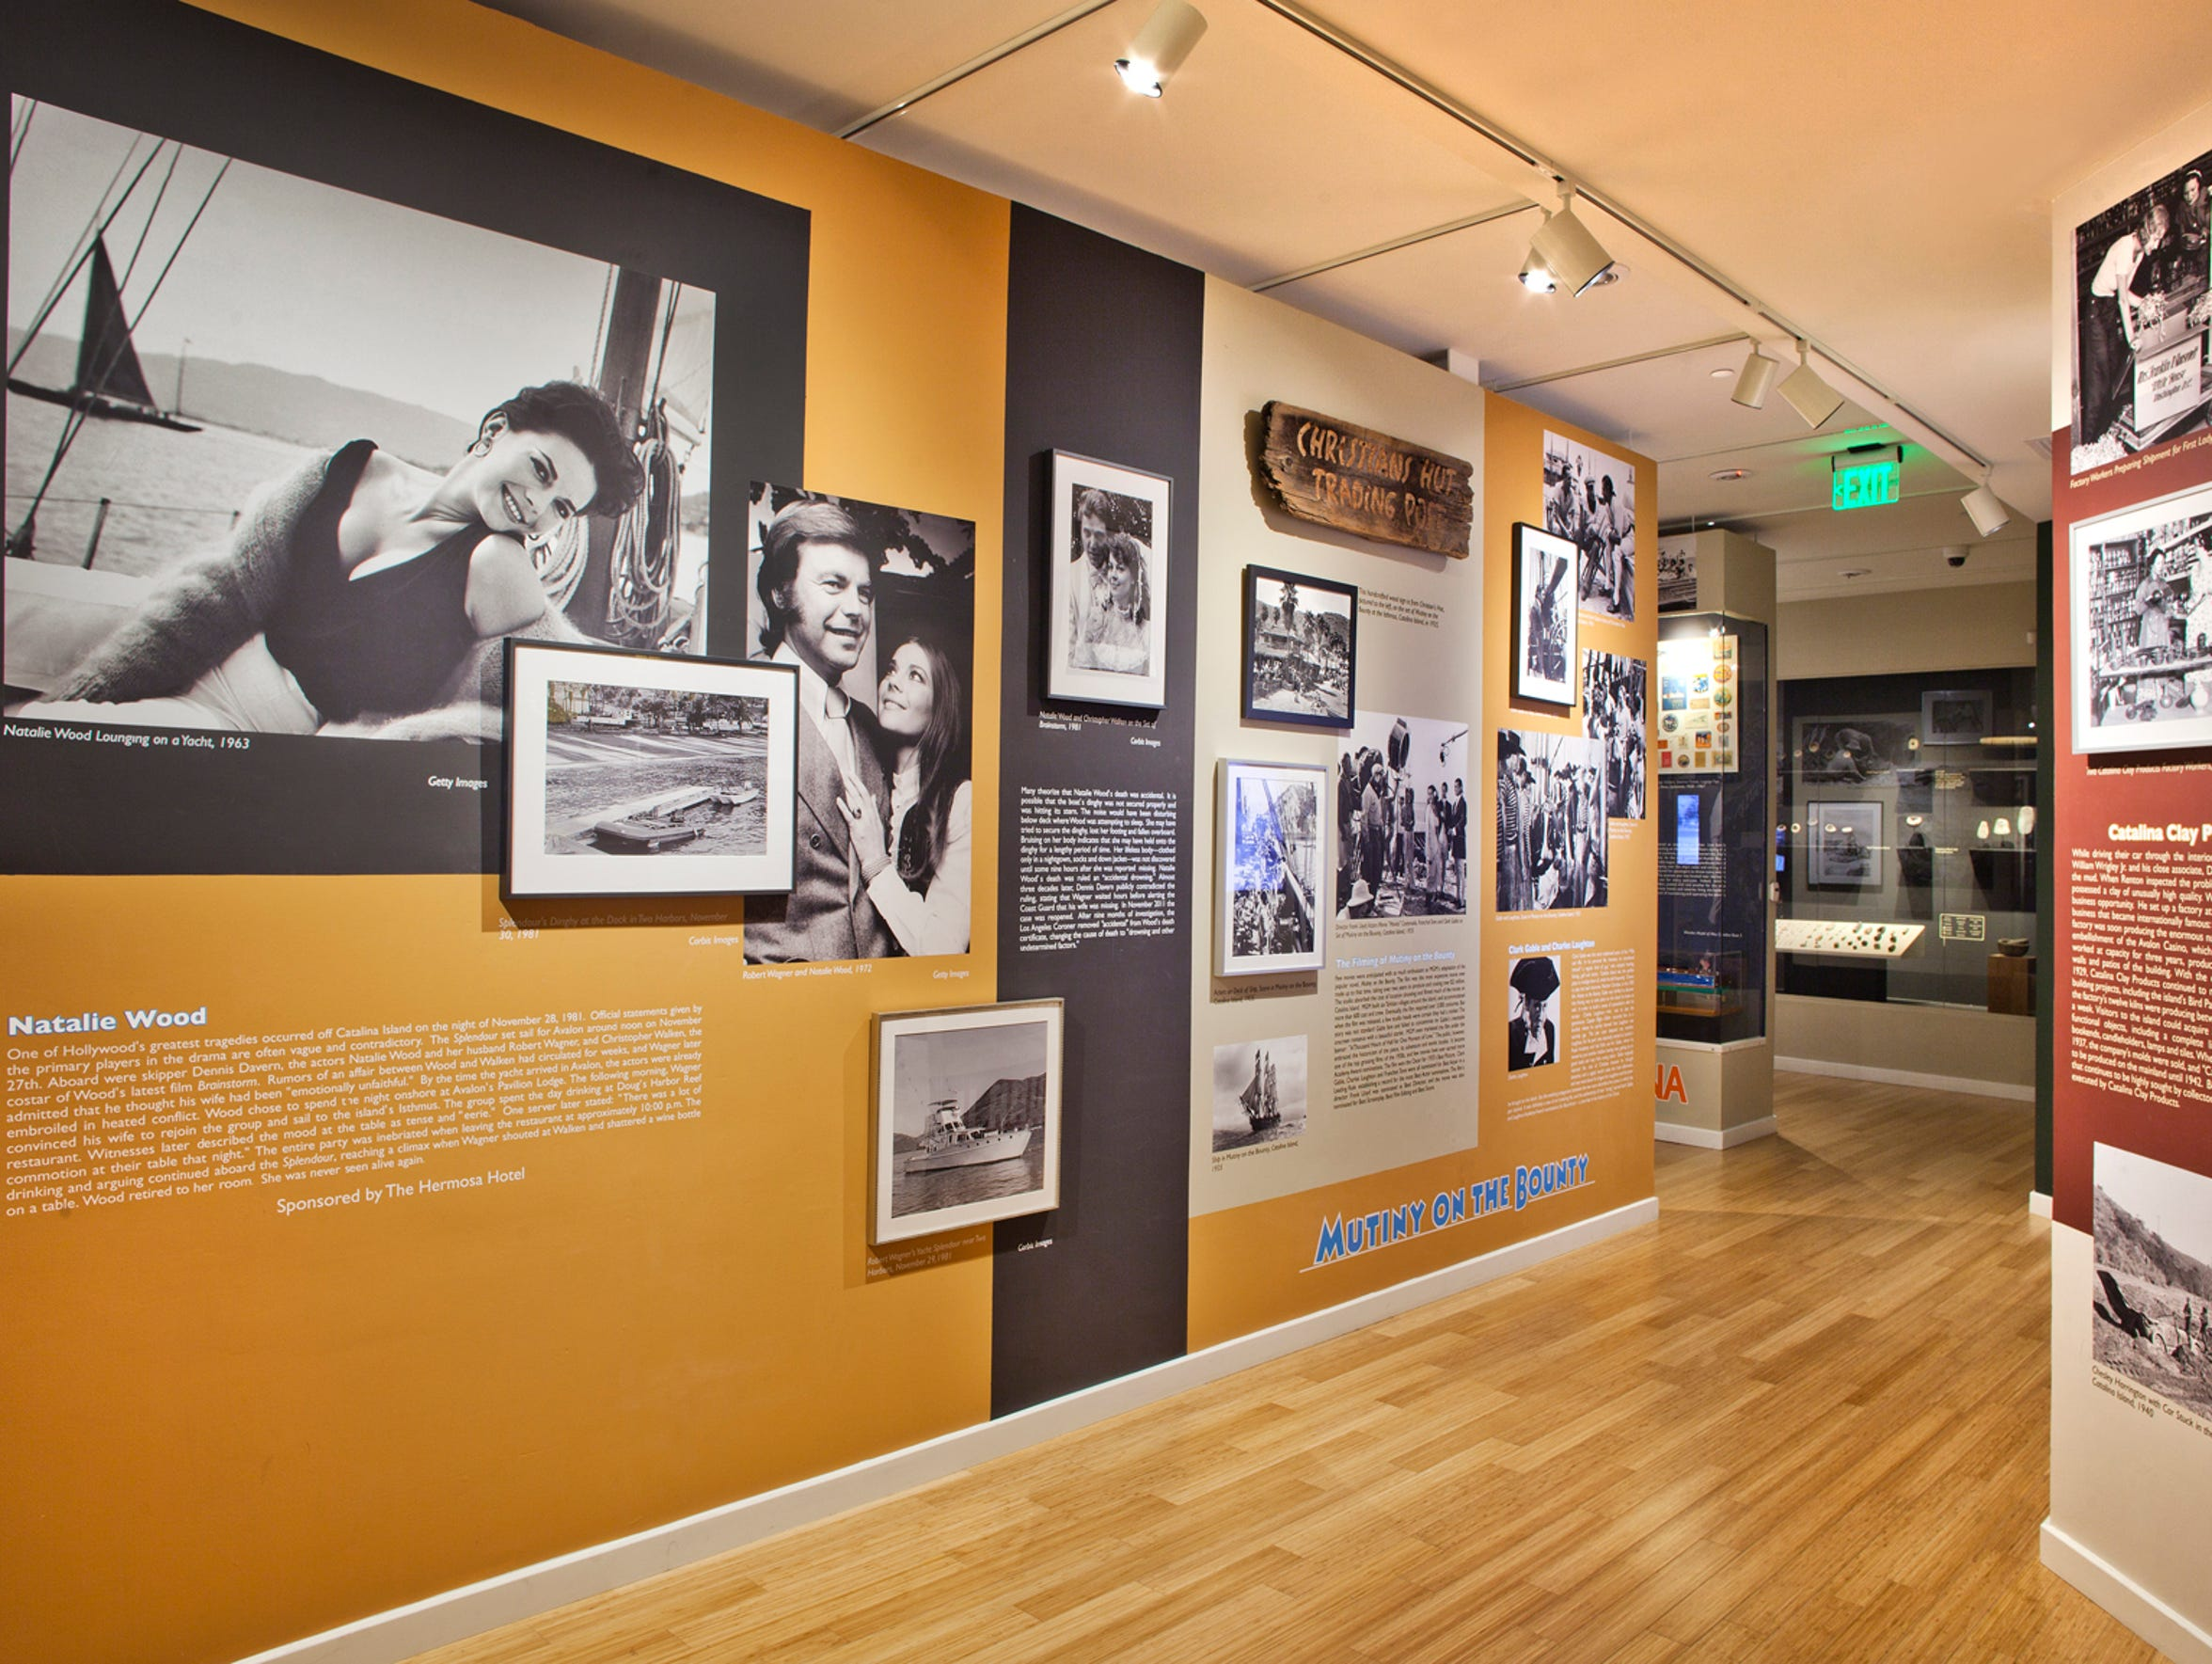 The Catalina Island Museum has an exhibition looking